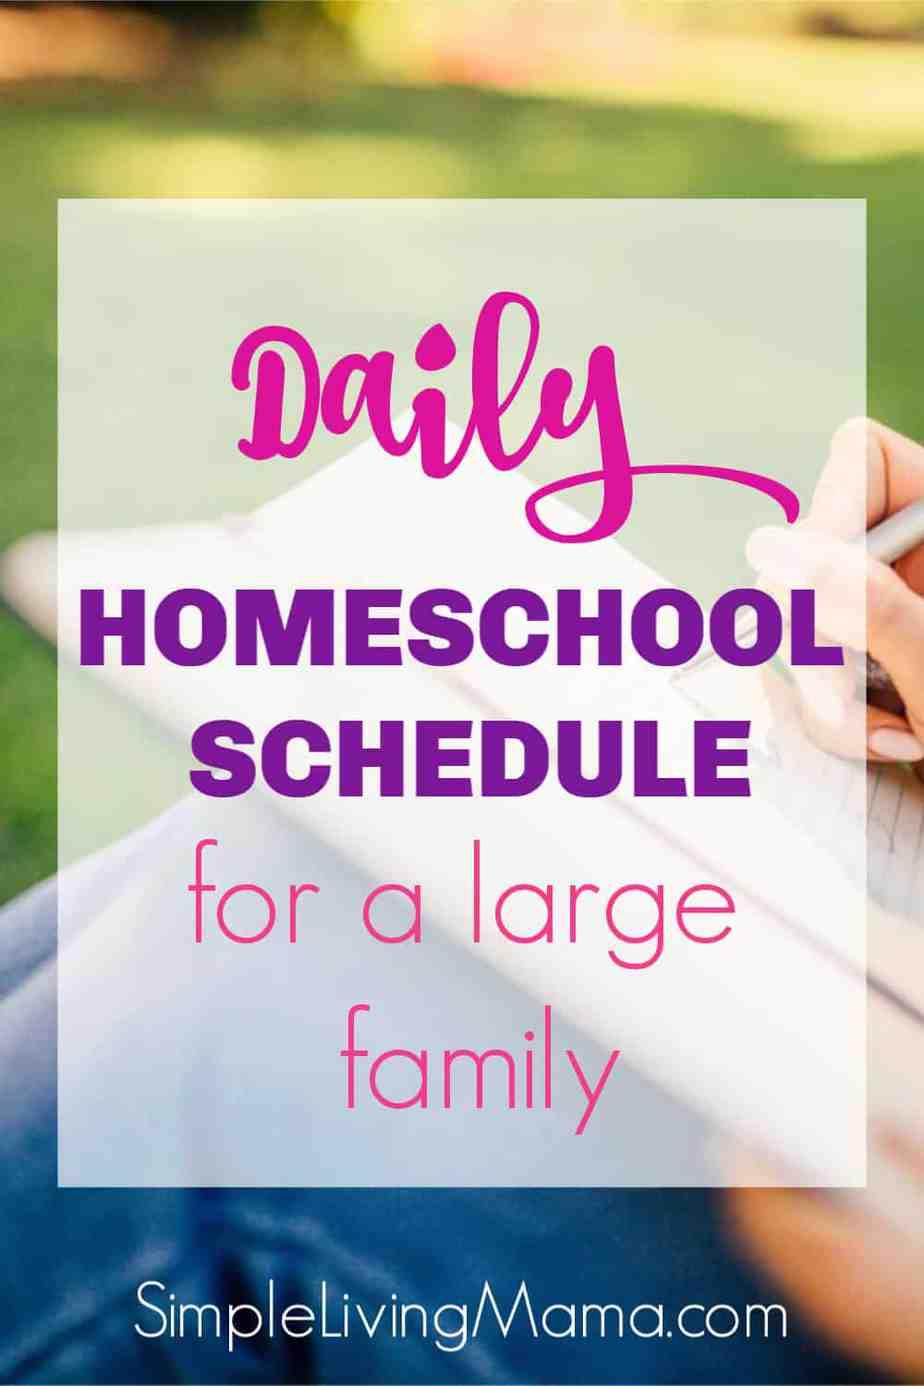 This daily homeschool schedule for a large family shows how one large family gets all of the homeschool work done!